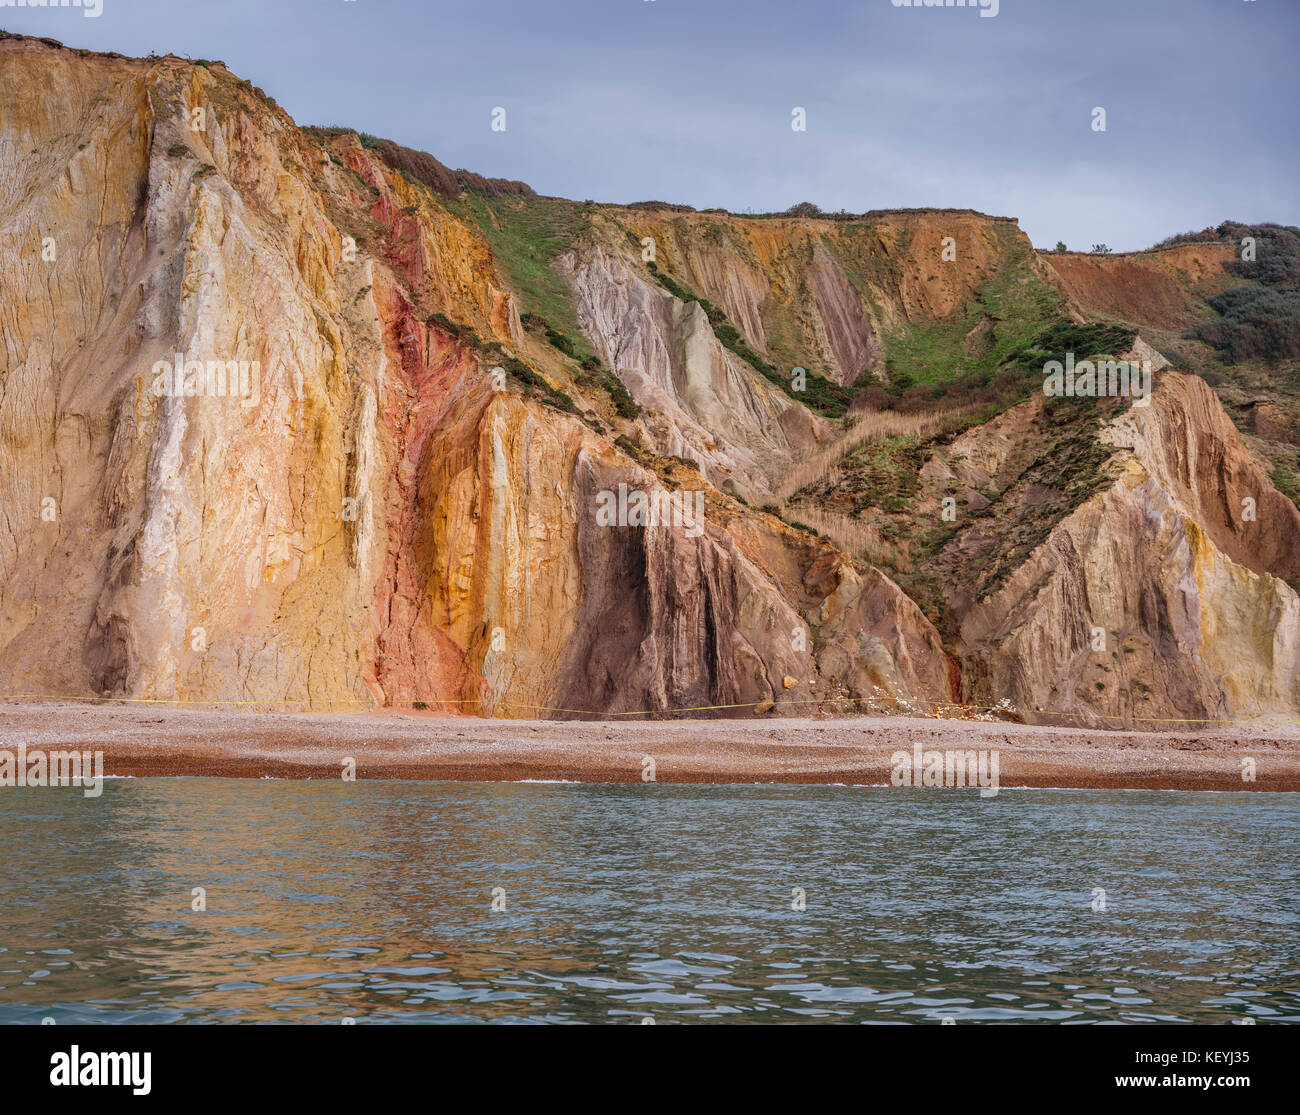 The mult-coloured sands of Alum Bay on the Isle of Wight. - Stock Image